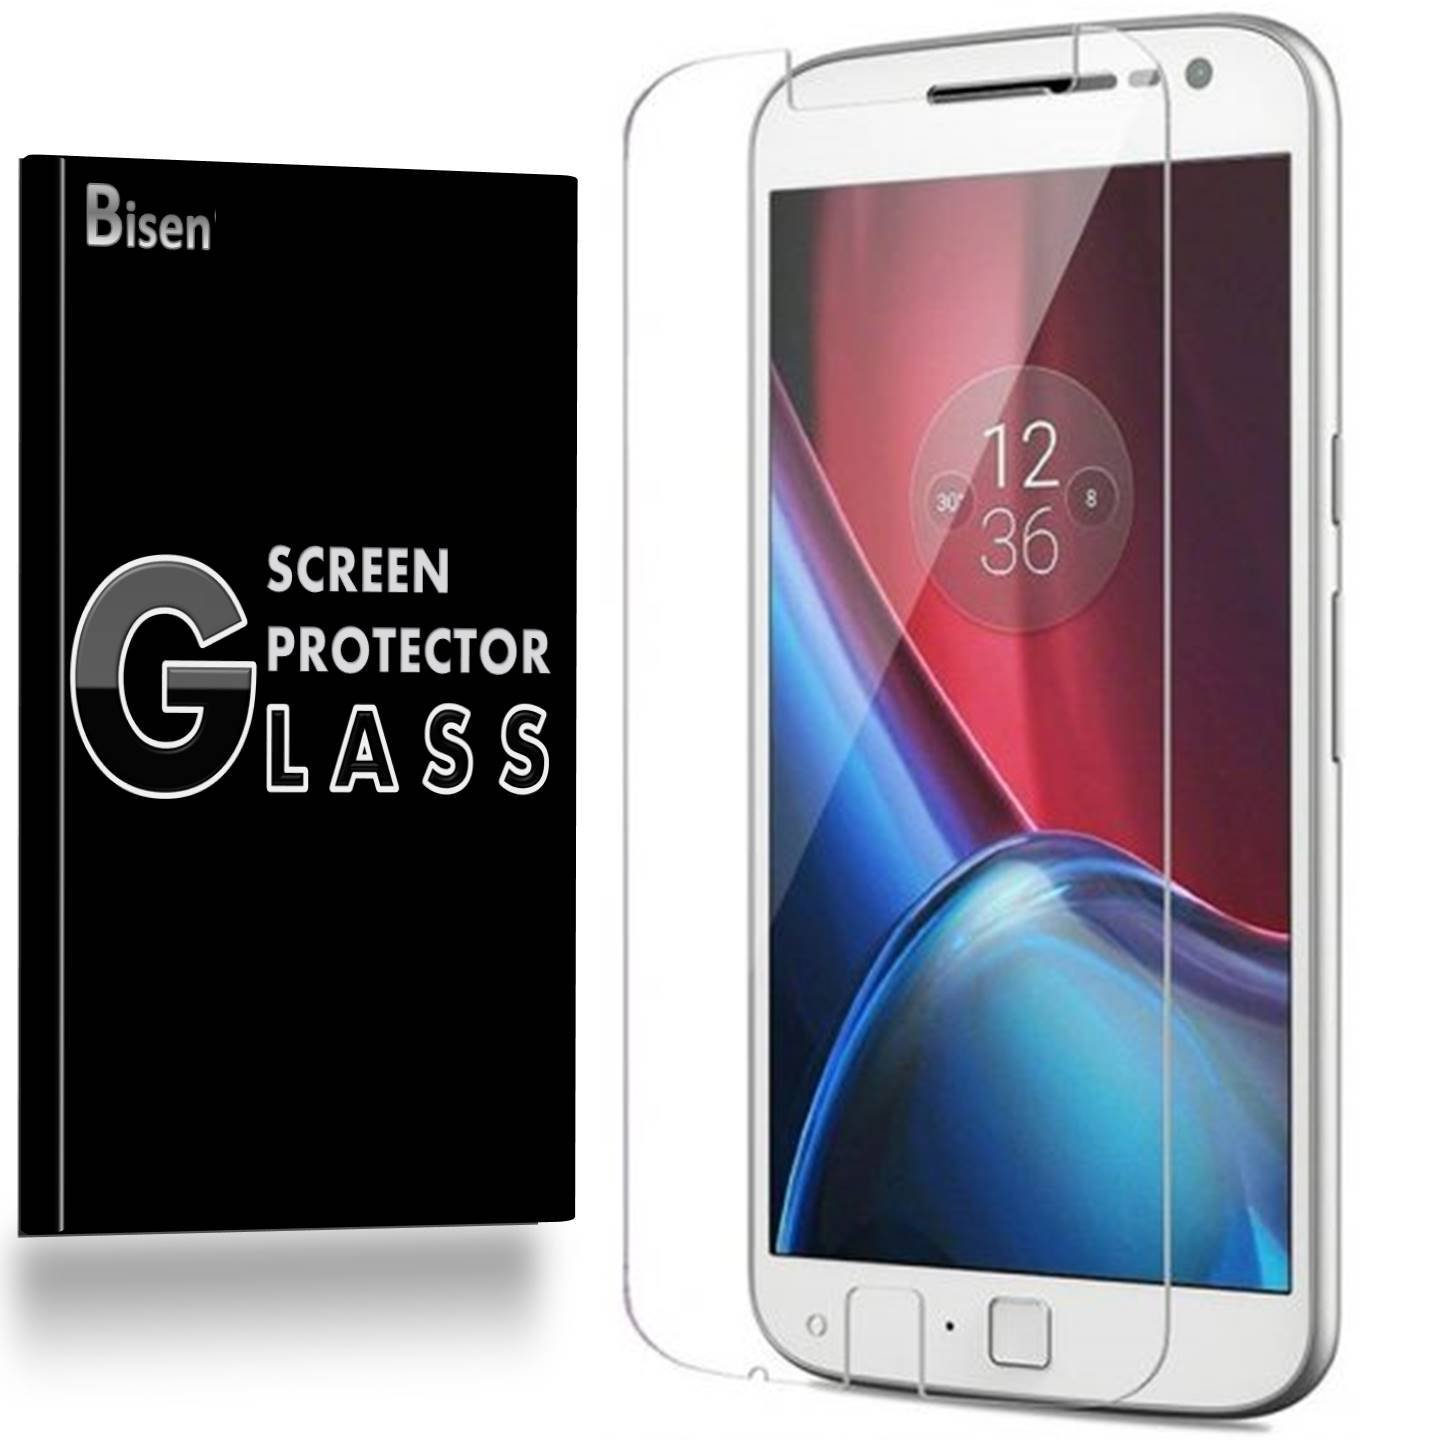 Motorola Moto Z Play Droid [3-Pack BISEN] 9H Tempered Glass Screen Protector, Anti-Scratch, Anti-Shock, Shatterproof, Bubble Free